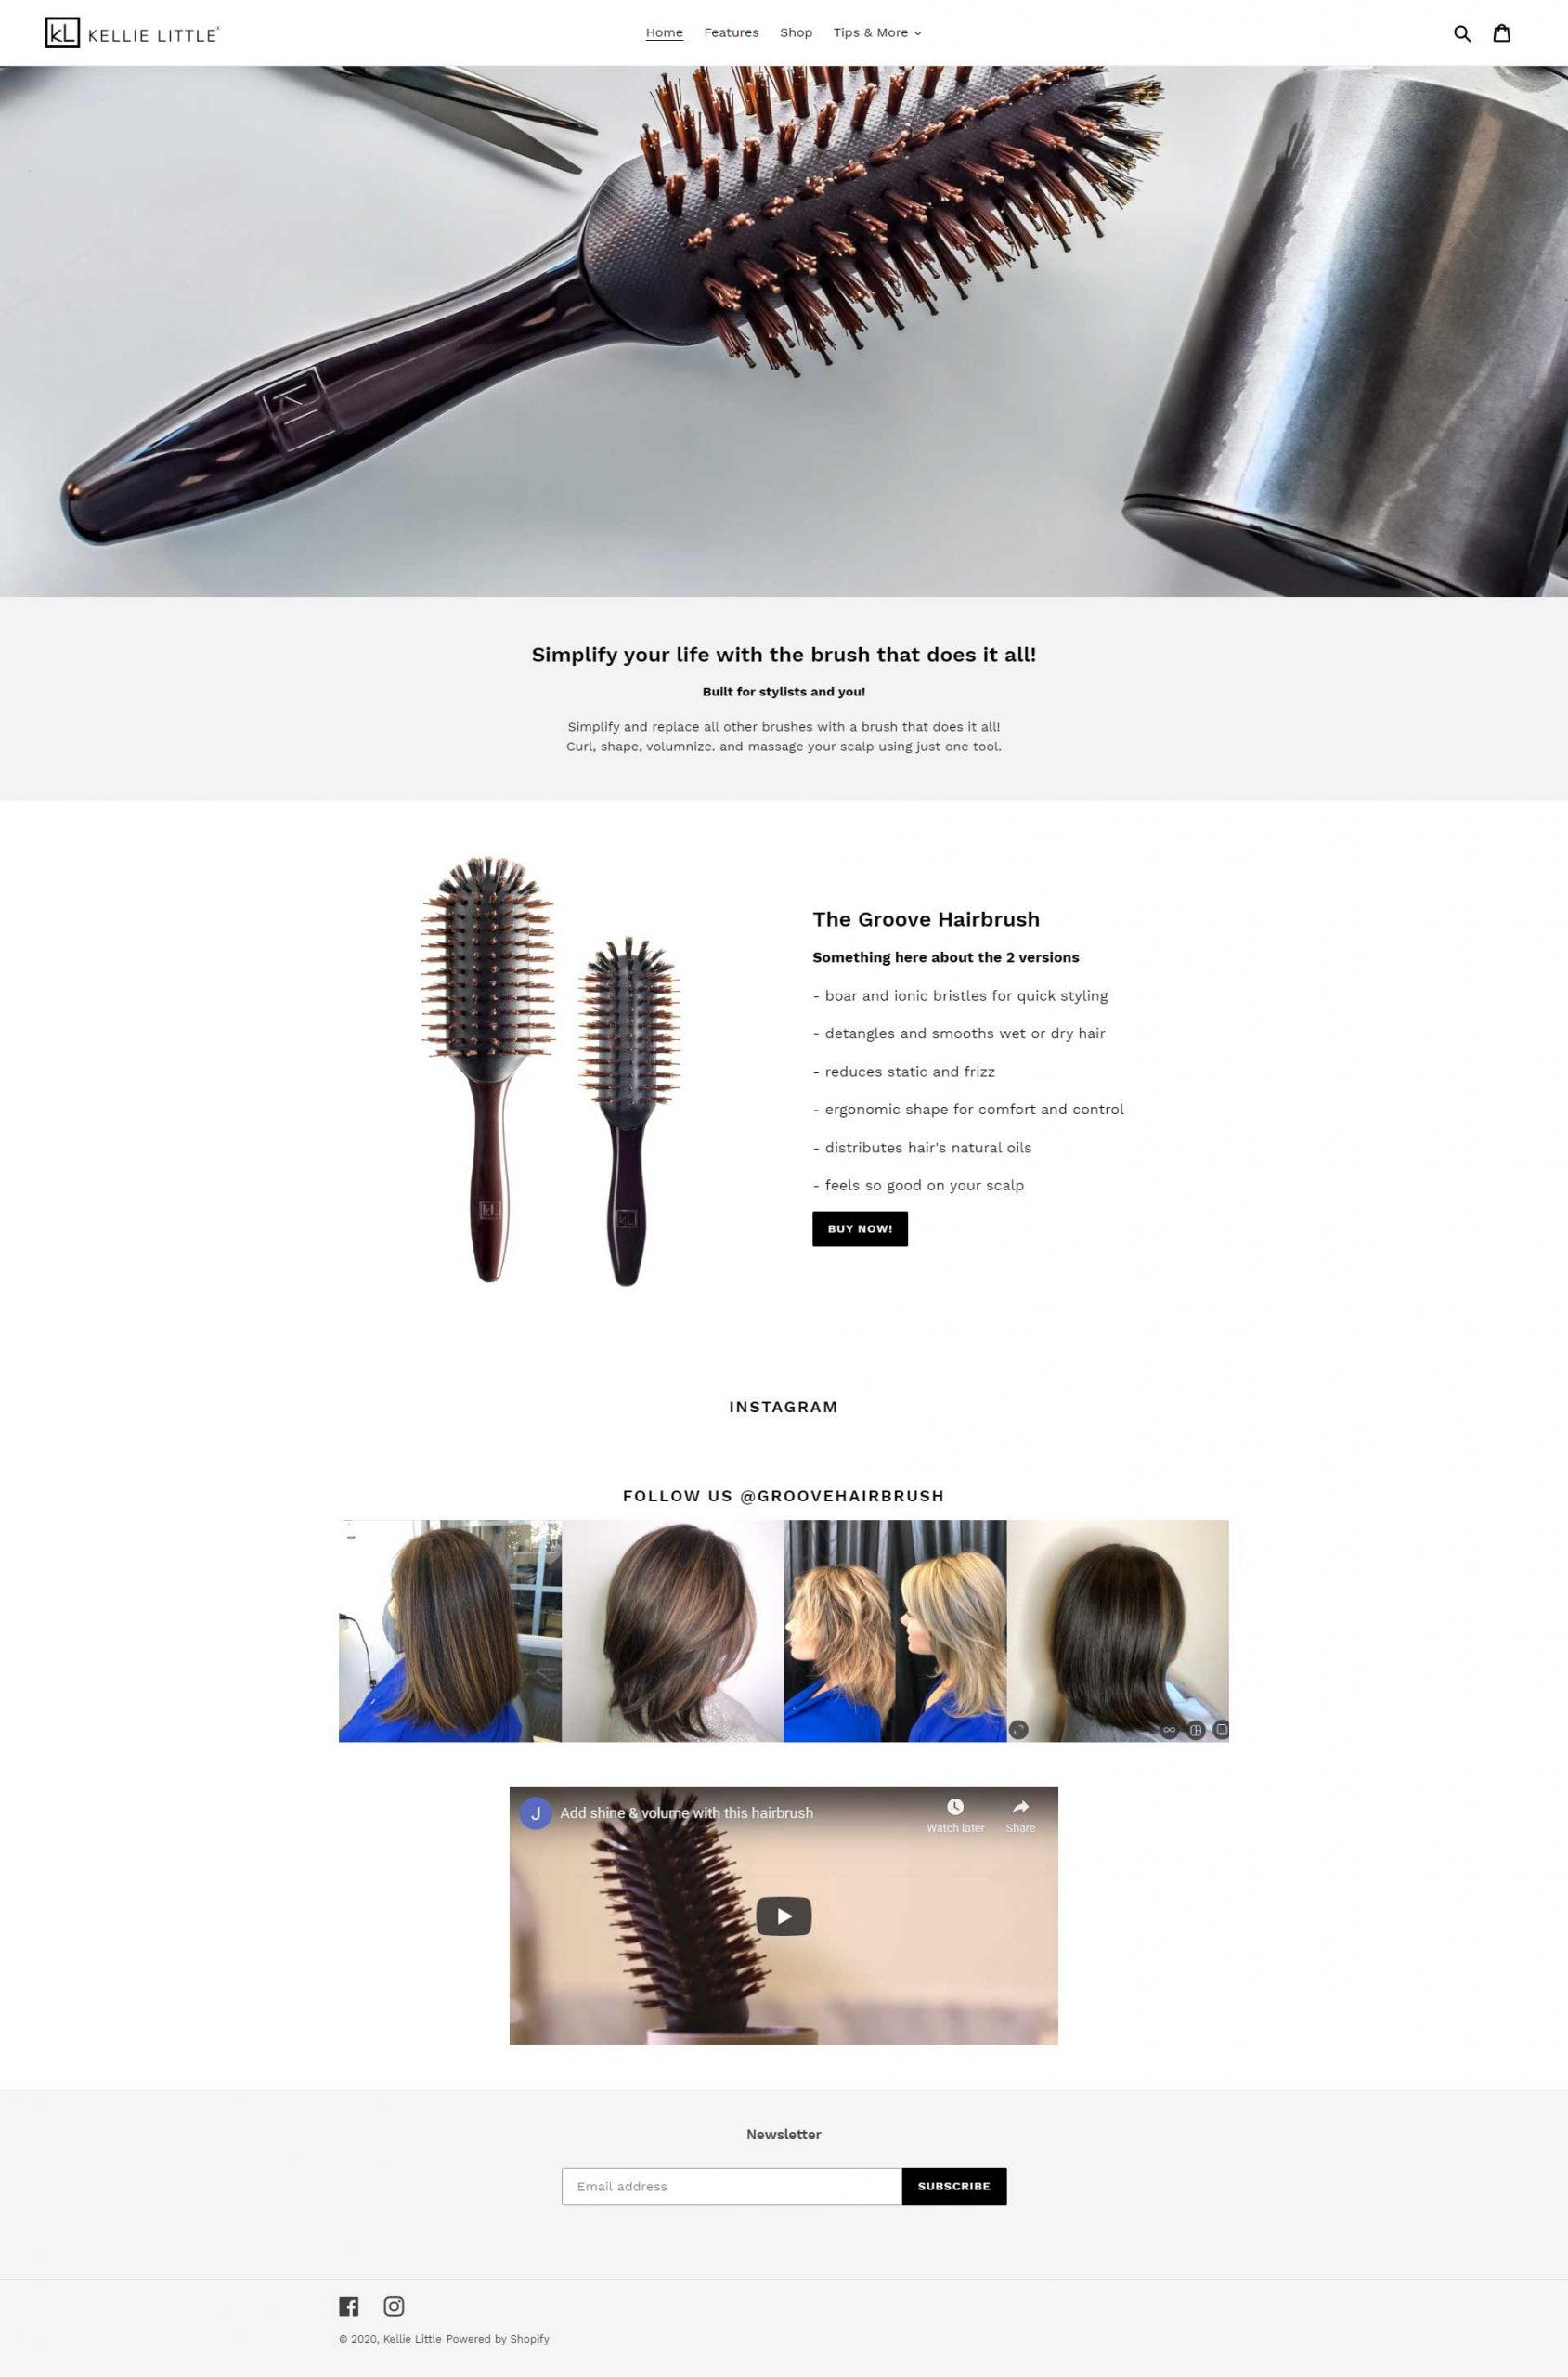 The Groove Hairbrush